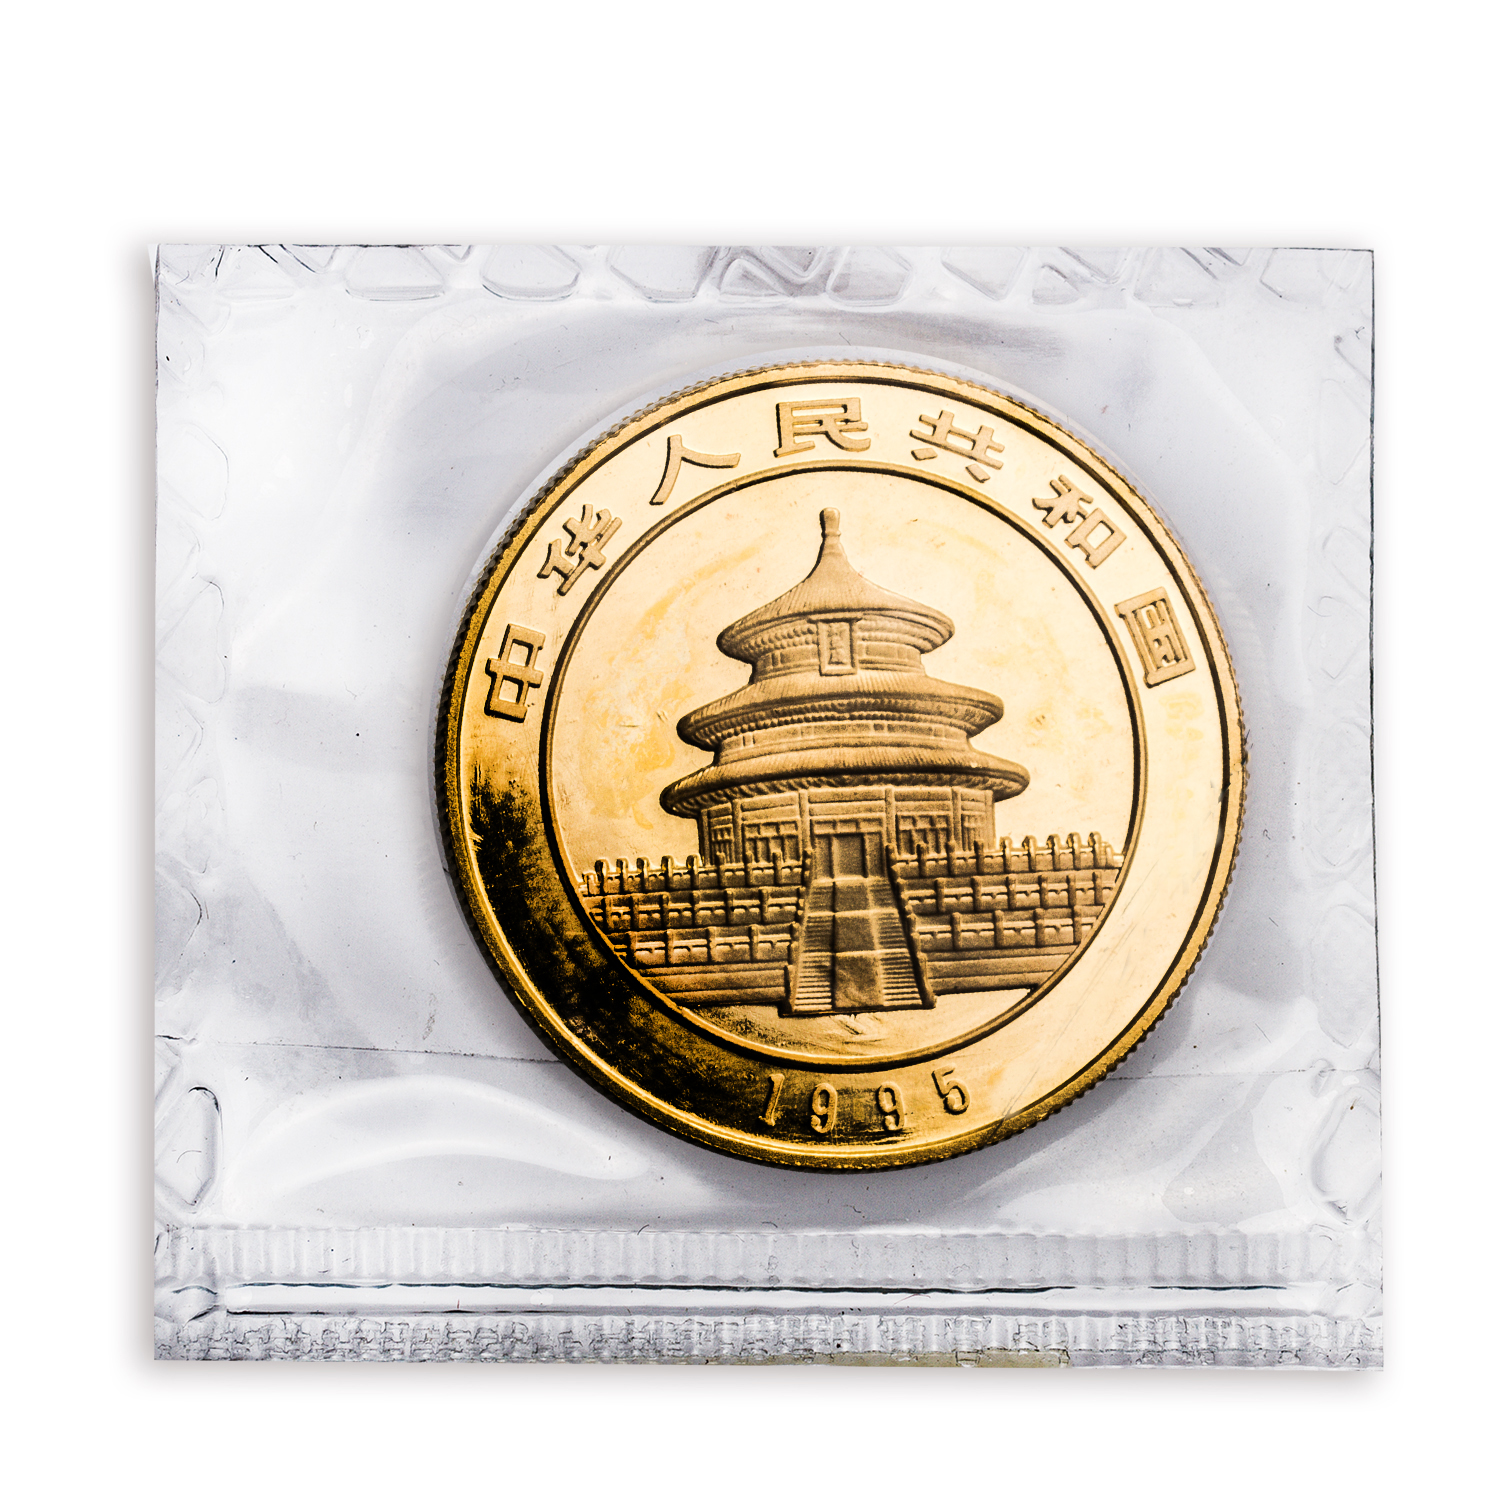 1995 China 1 oz Gold Panda Large Date BU (Sealed)